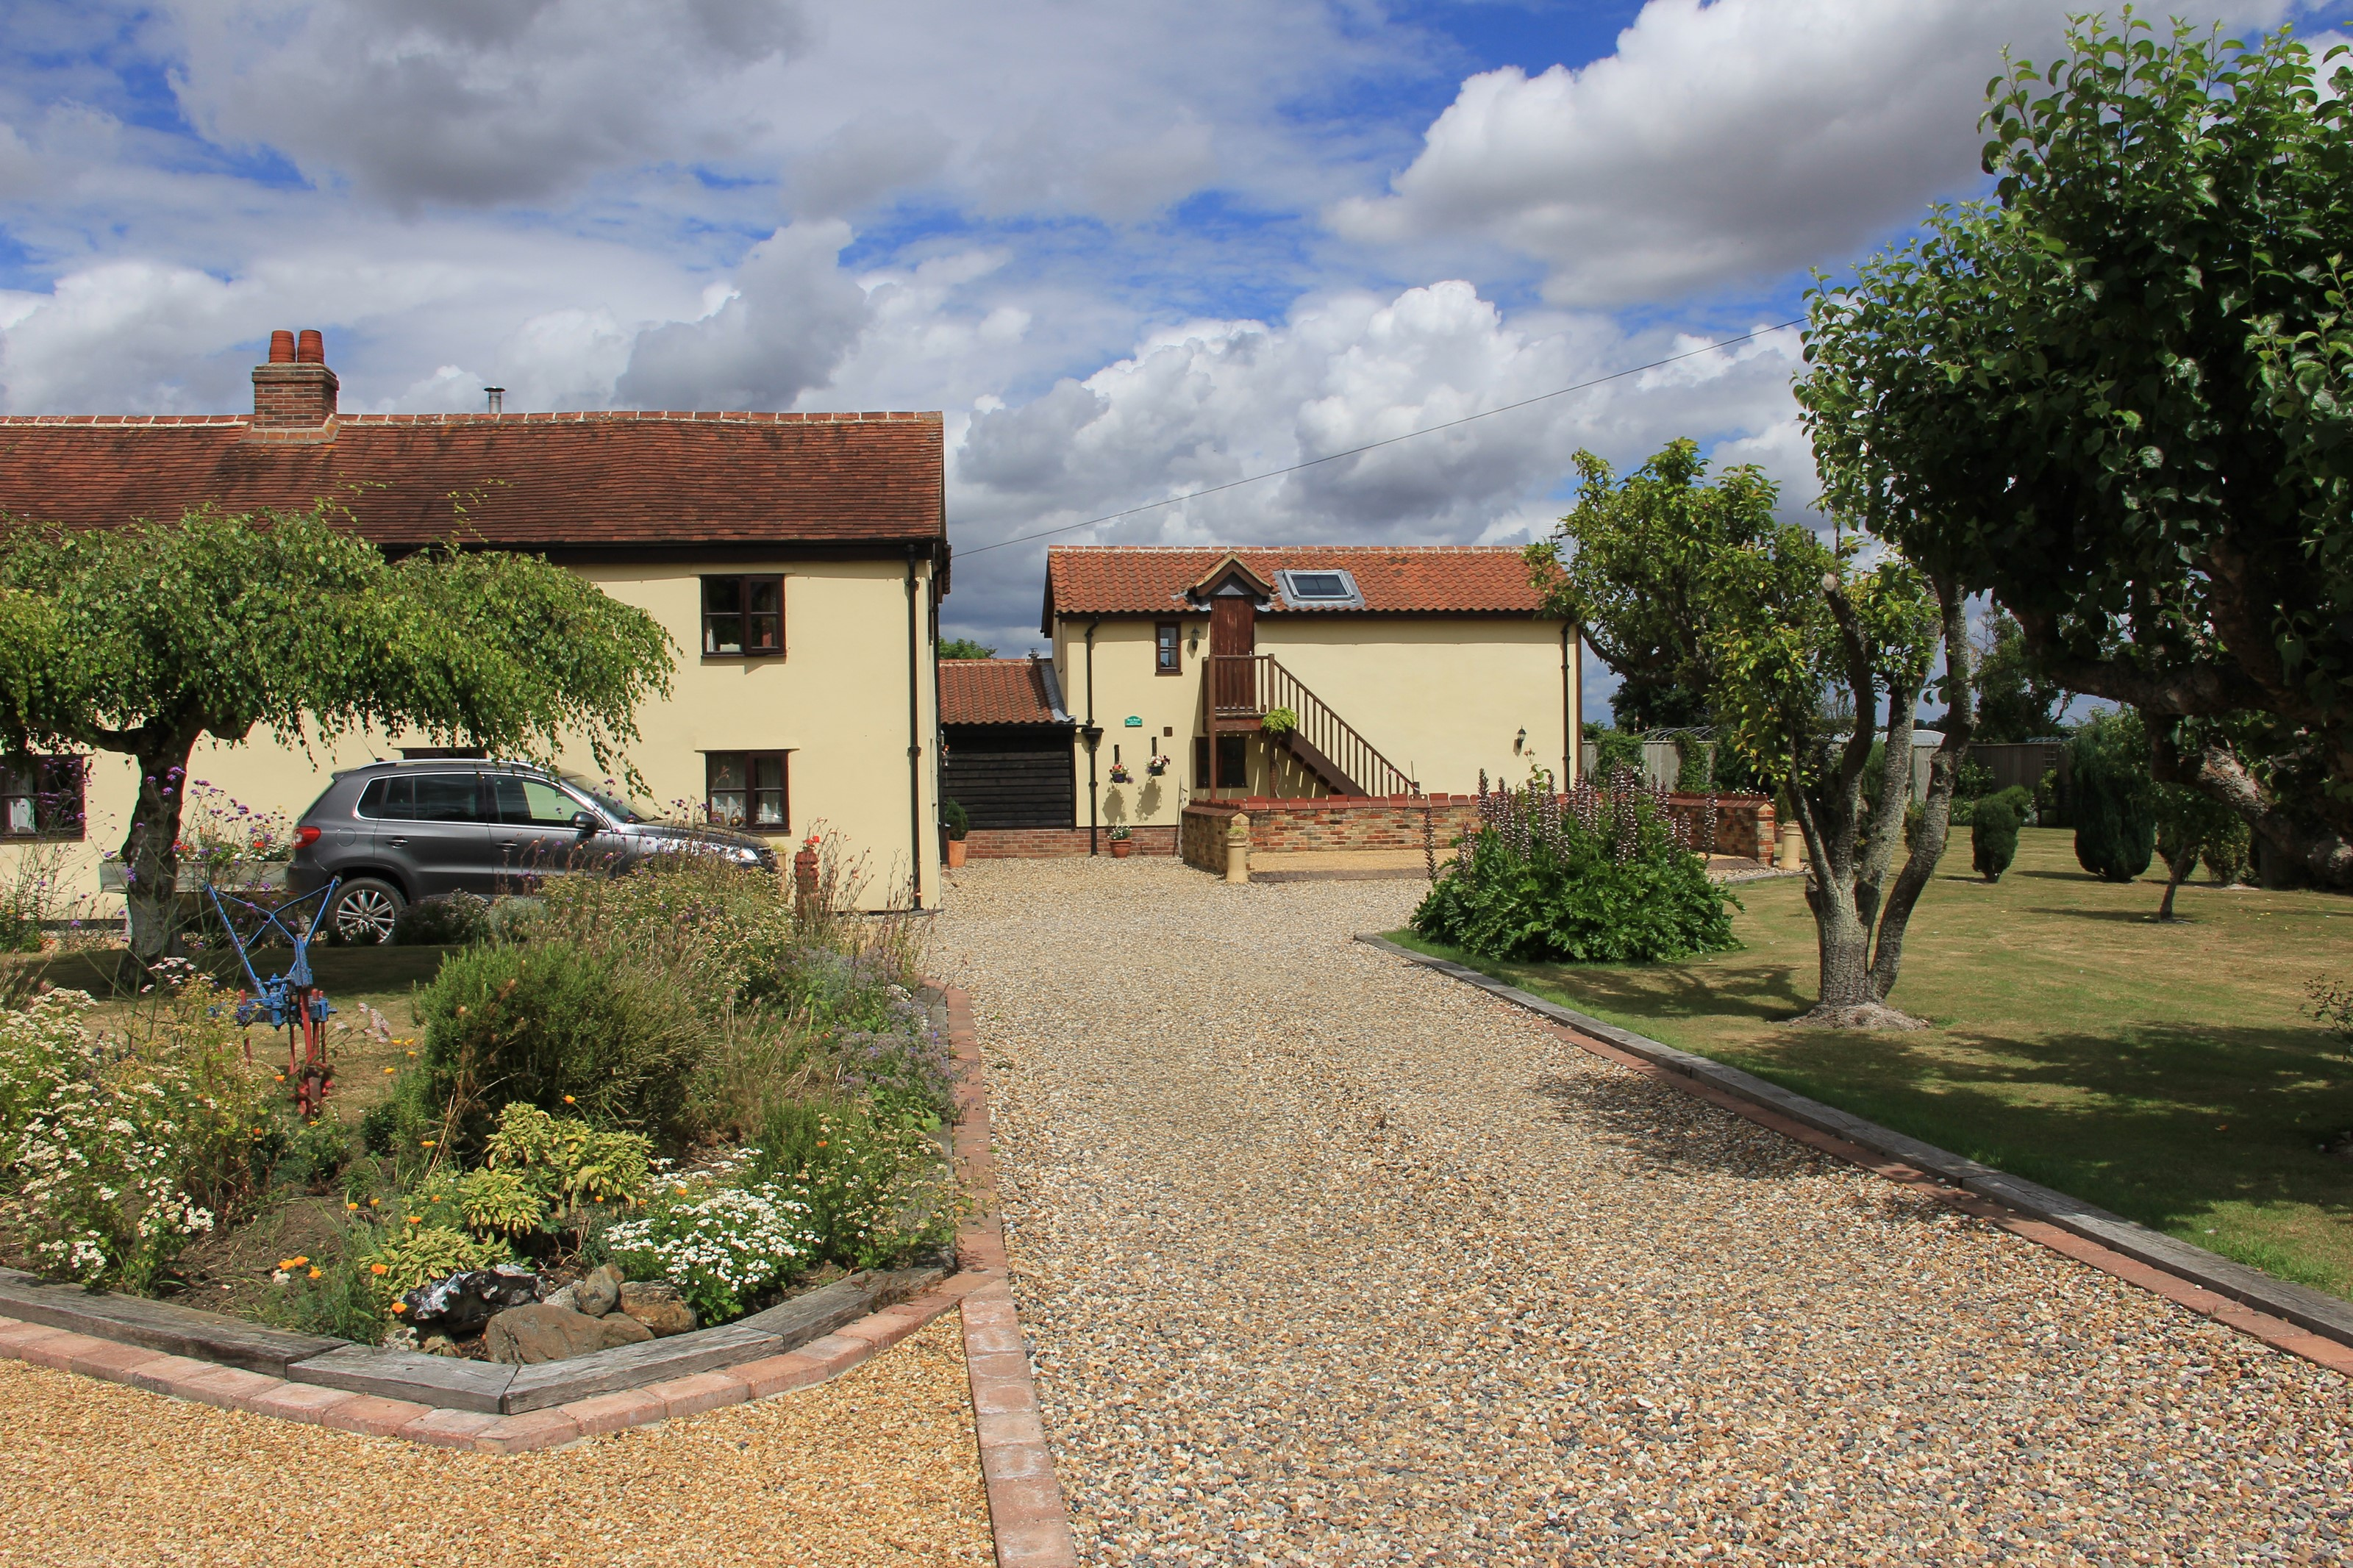 Picture of Box Bush B&B & Holiday Cottage